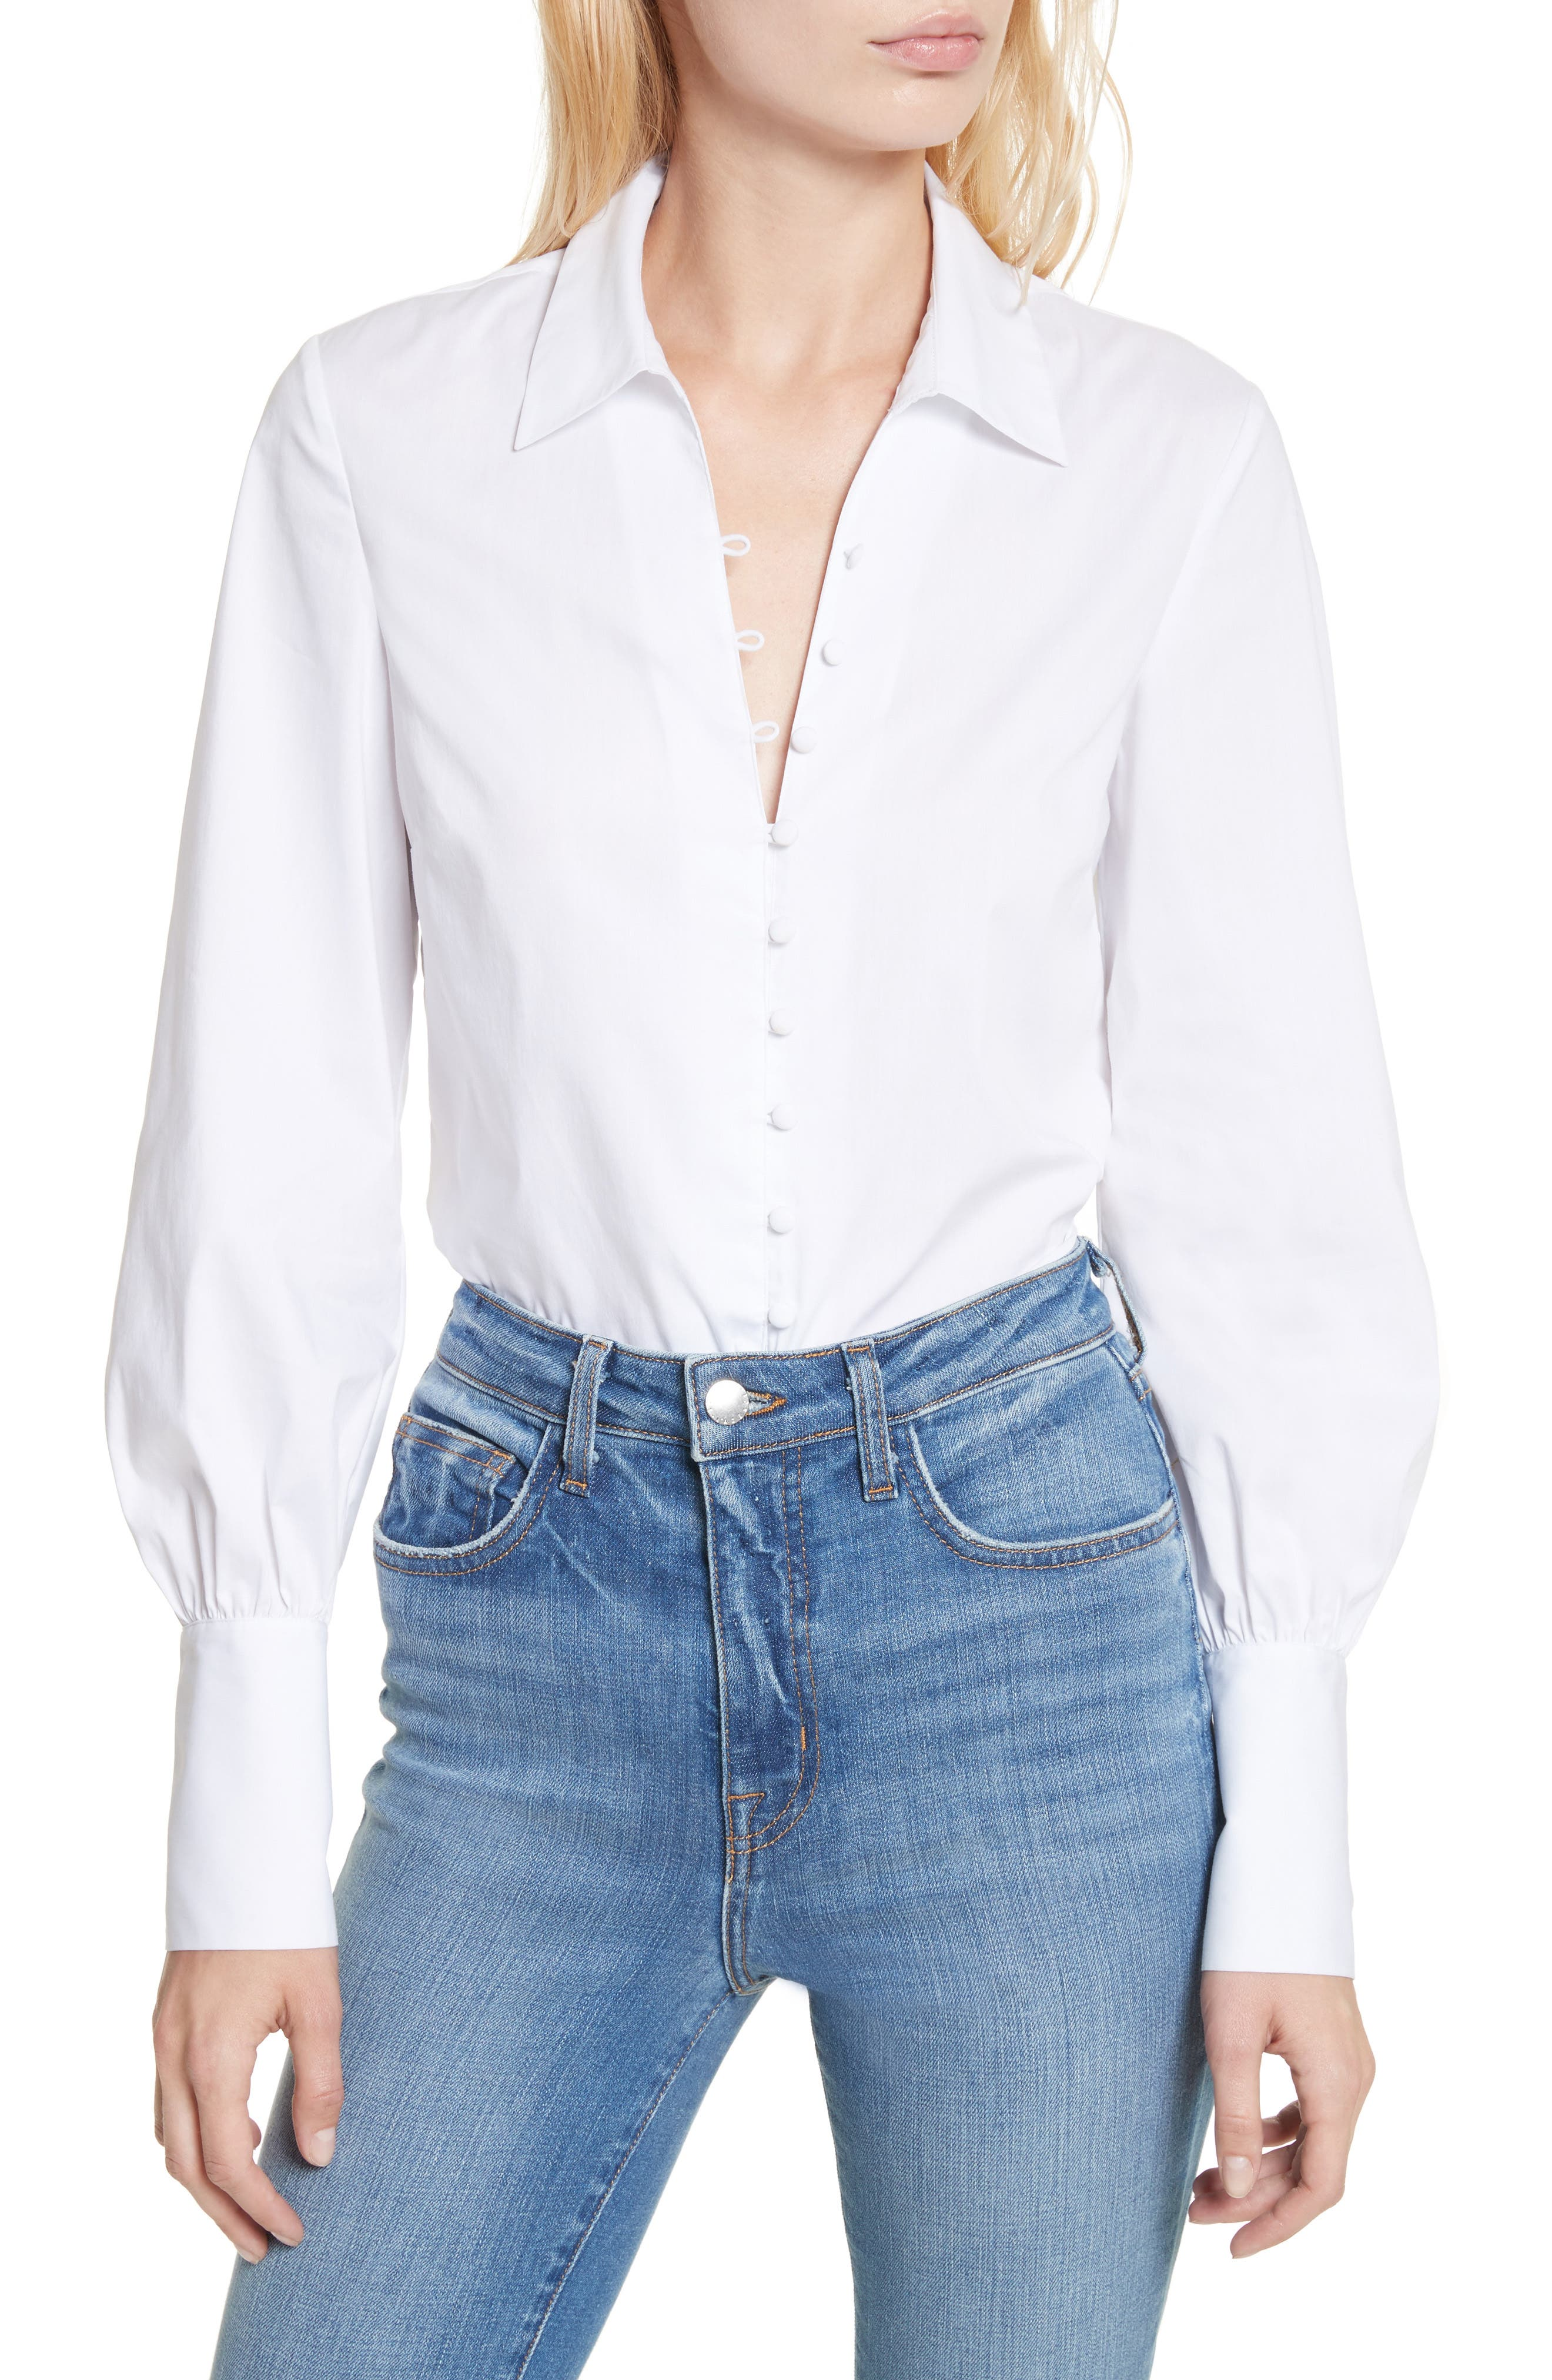 Alternate Image 1 Selected - L'AGENCE Puff Sleeve Shirt